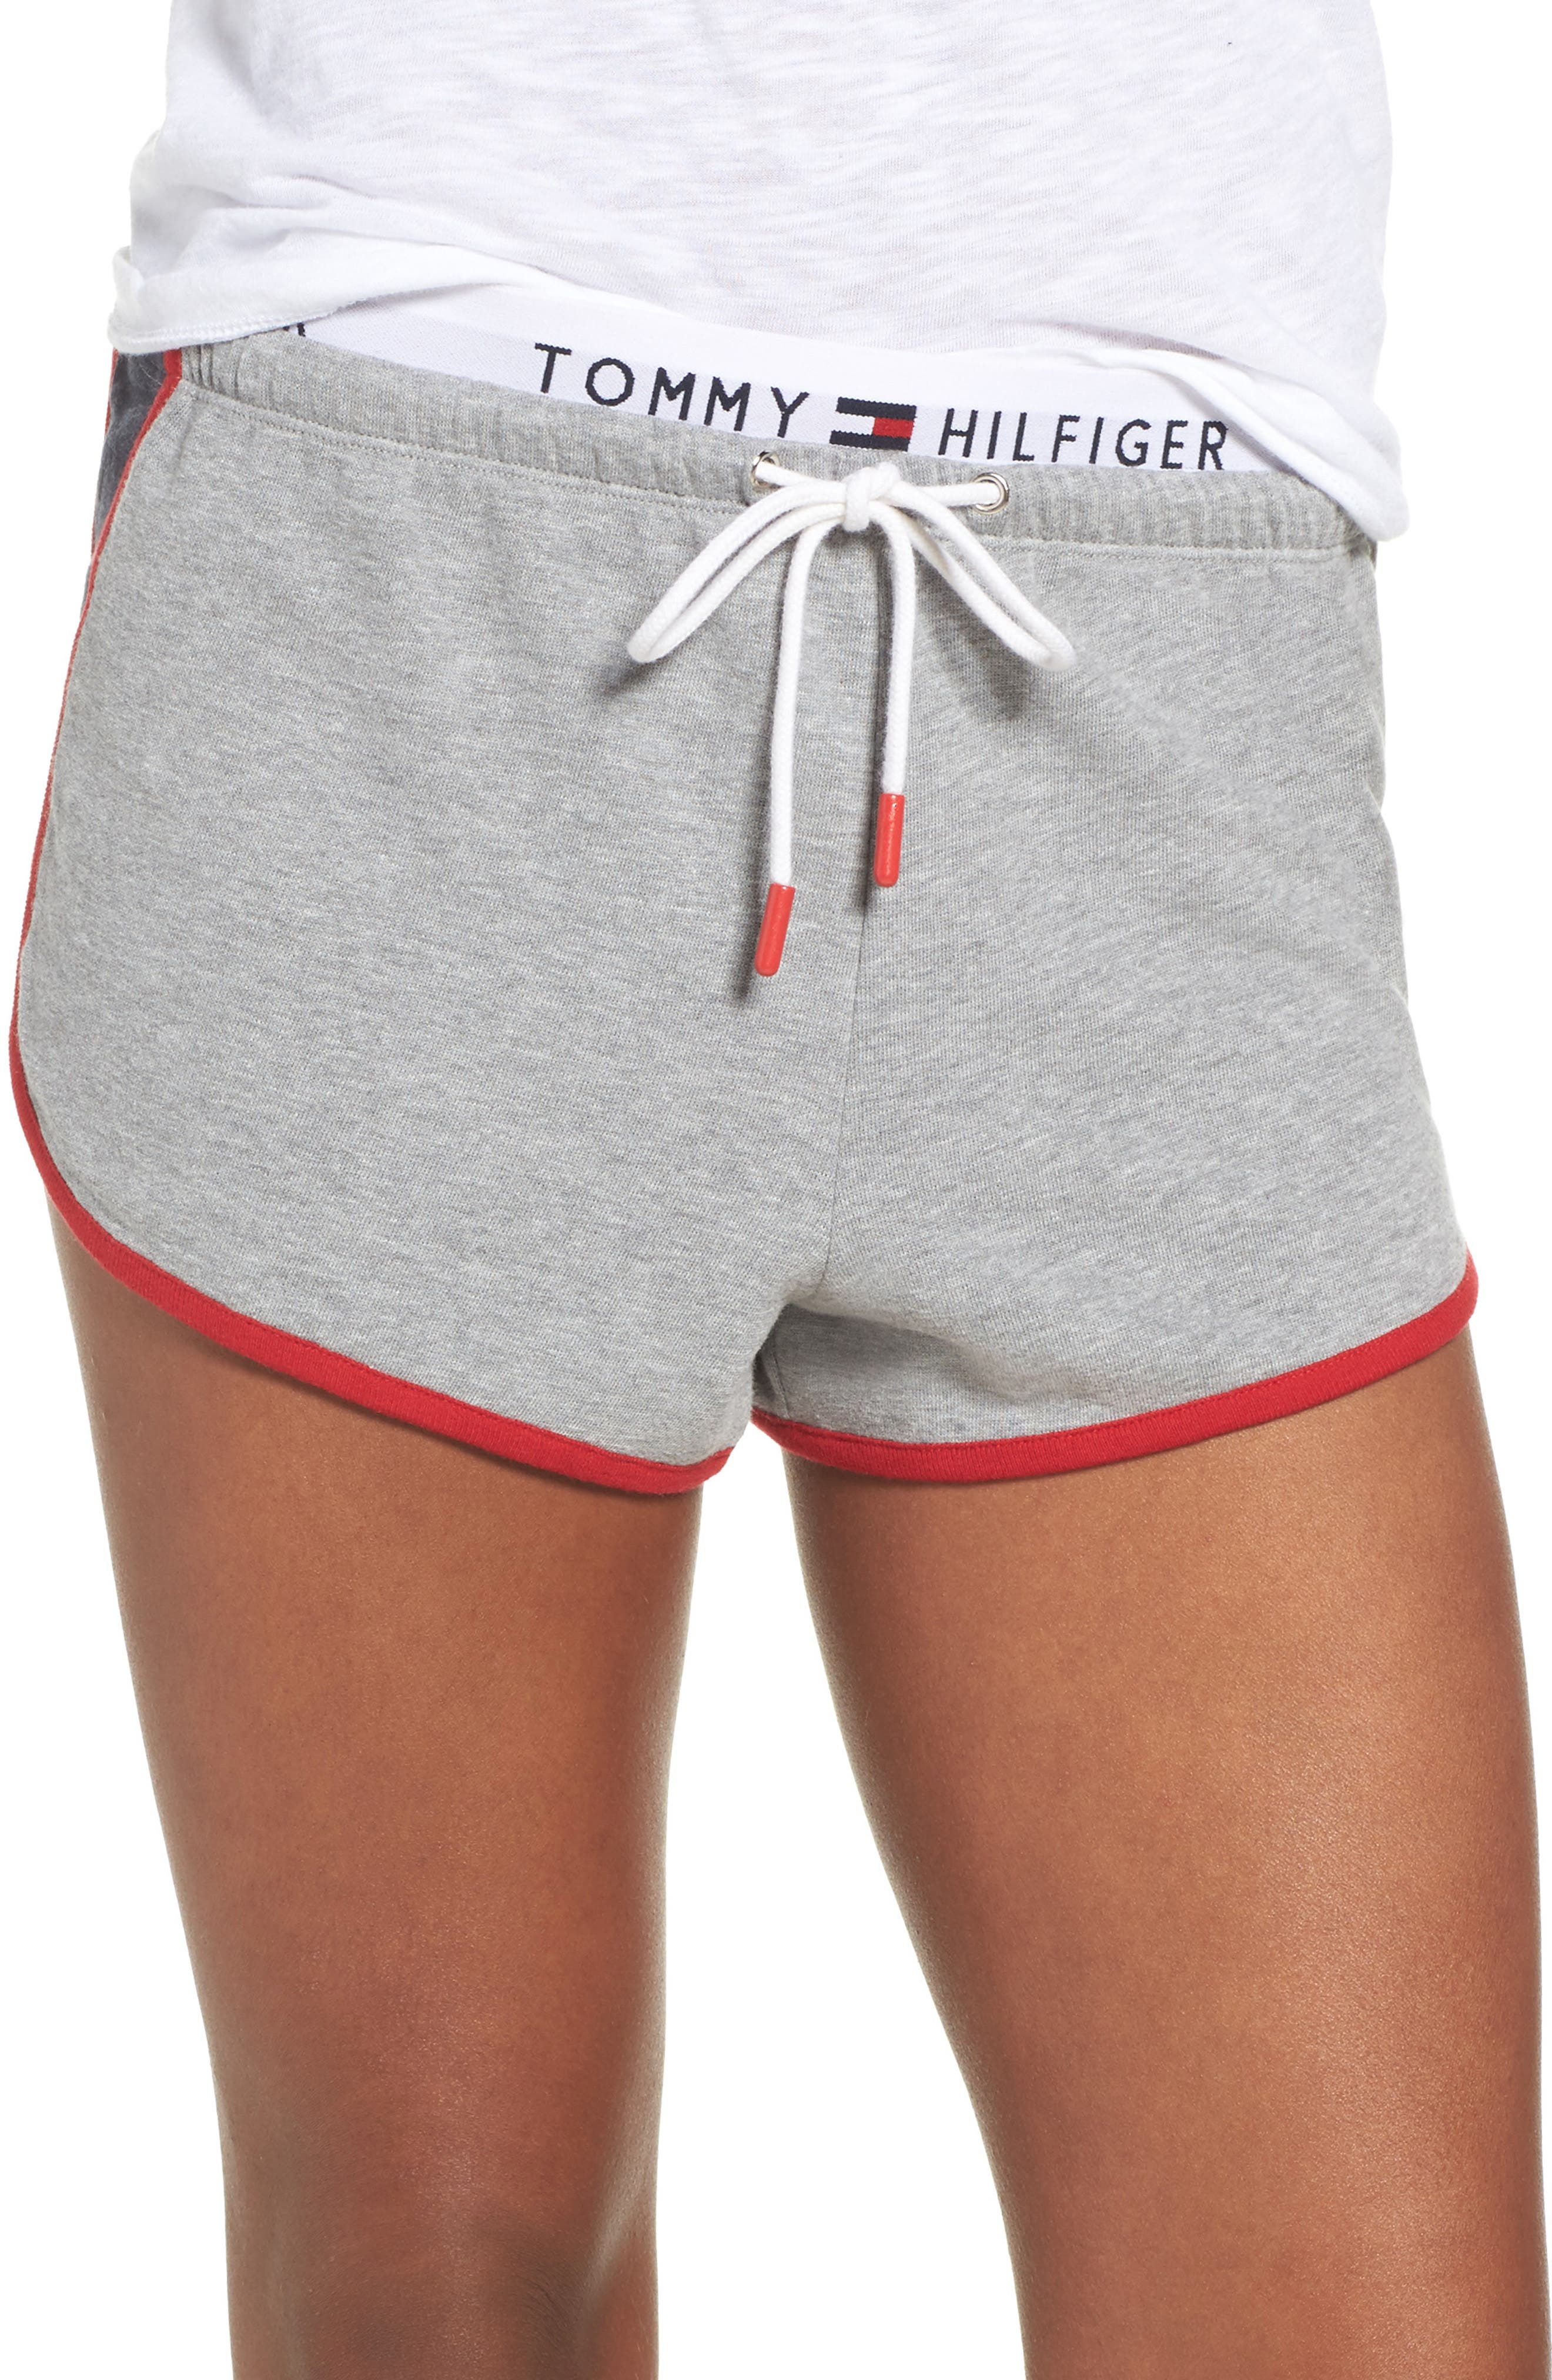 Alternate Image 1 Selected - Tommy Hilfiger TH Retro Shorts